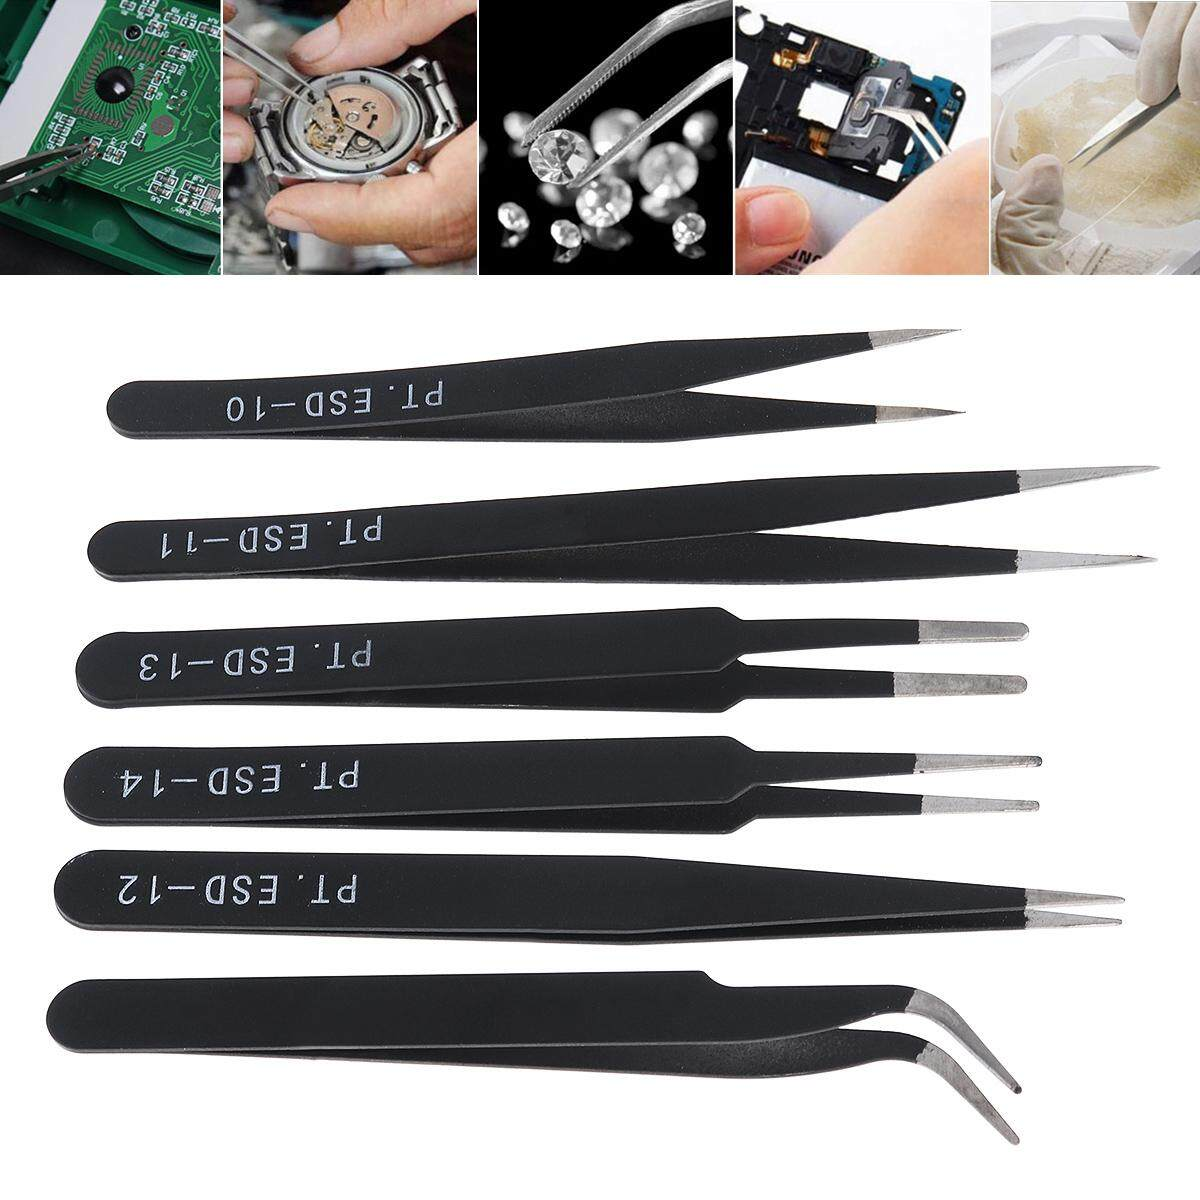 6pcs/set Stainless Steel Tweezers 1.0MM Anti-static Fix Repair Tool Kit for Electronics,Jewelry and Other Fine Crafts